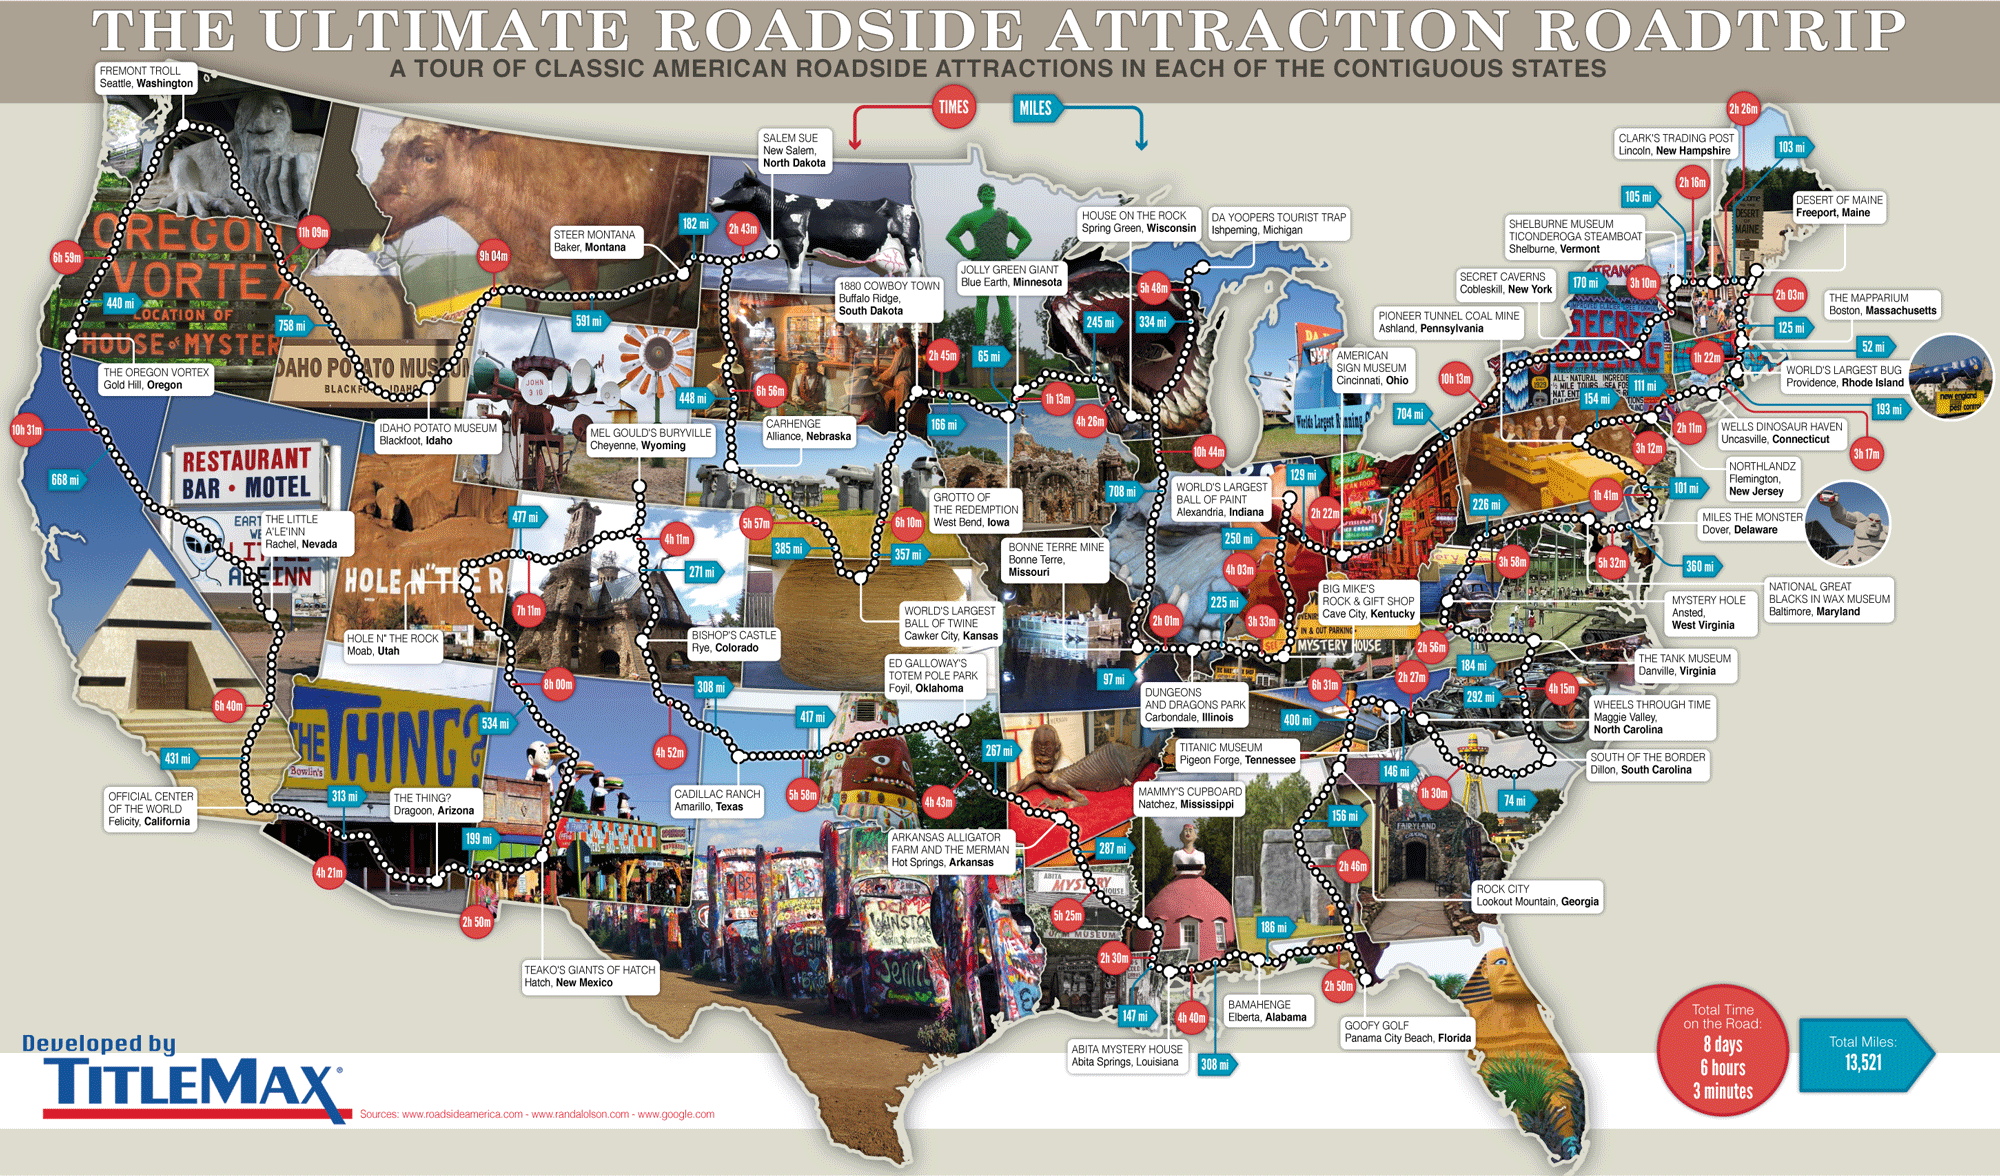 The Ultimate Roadside Attraction Roadtrip